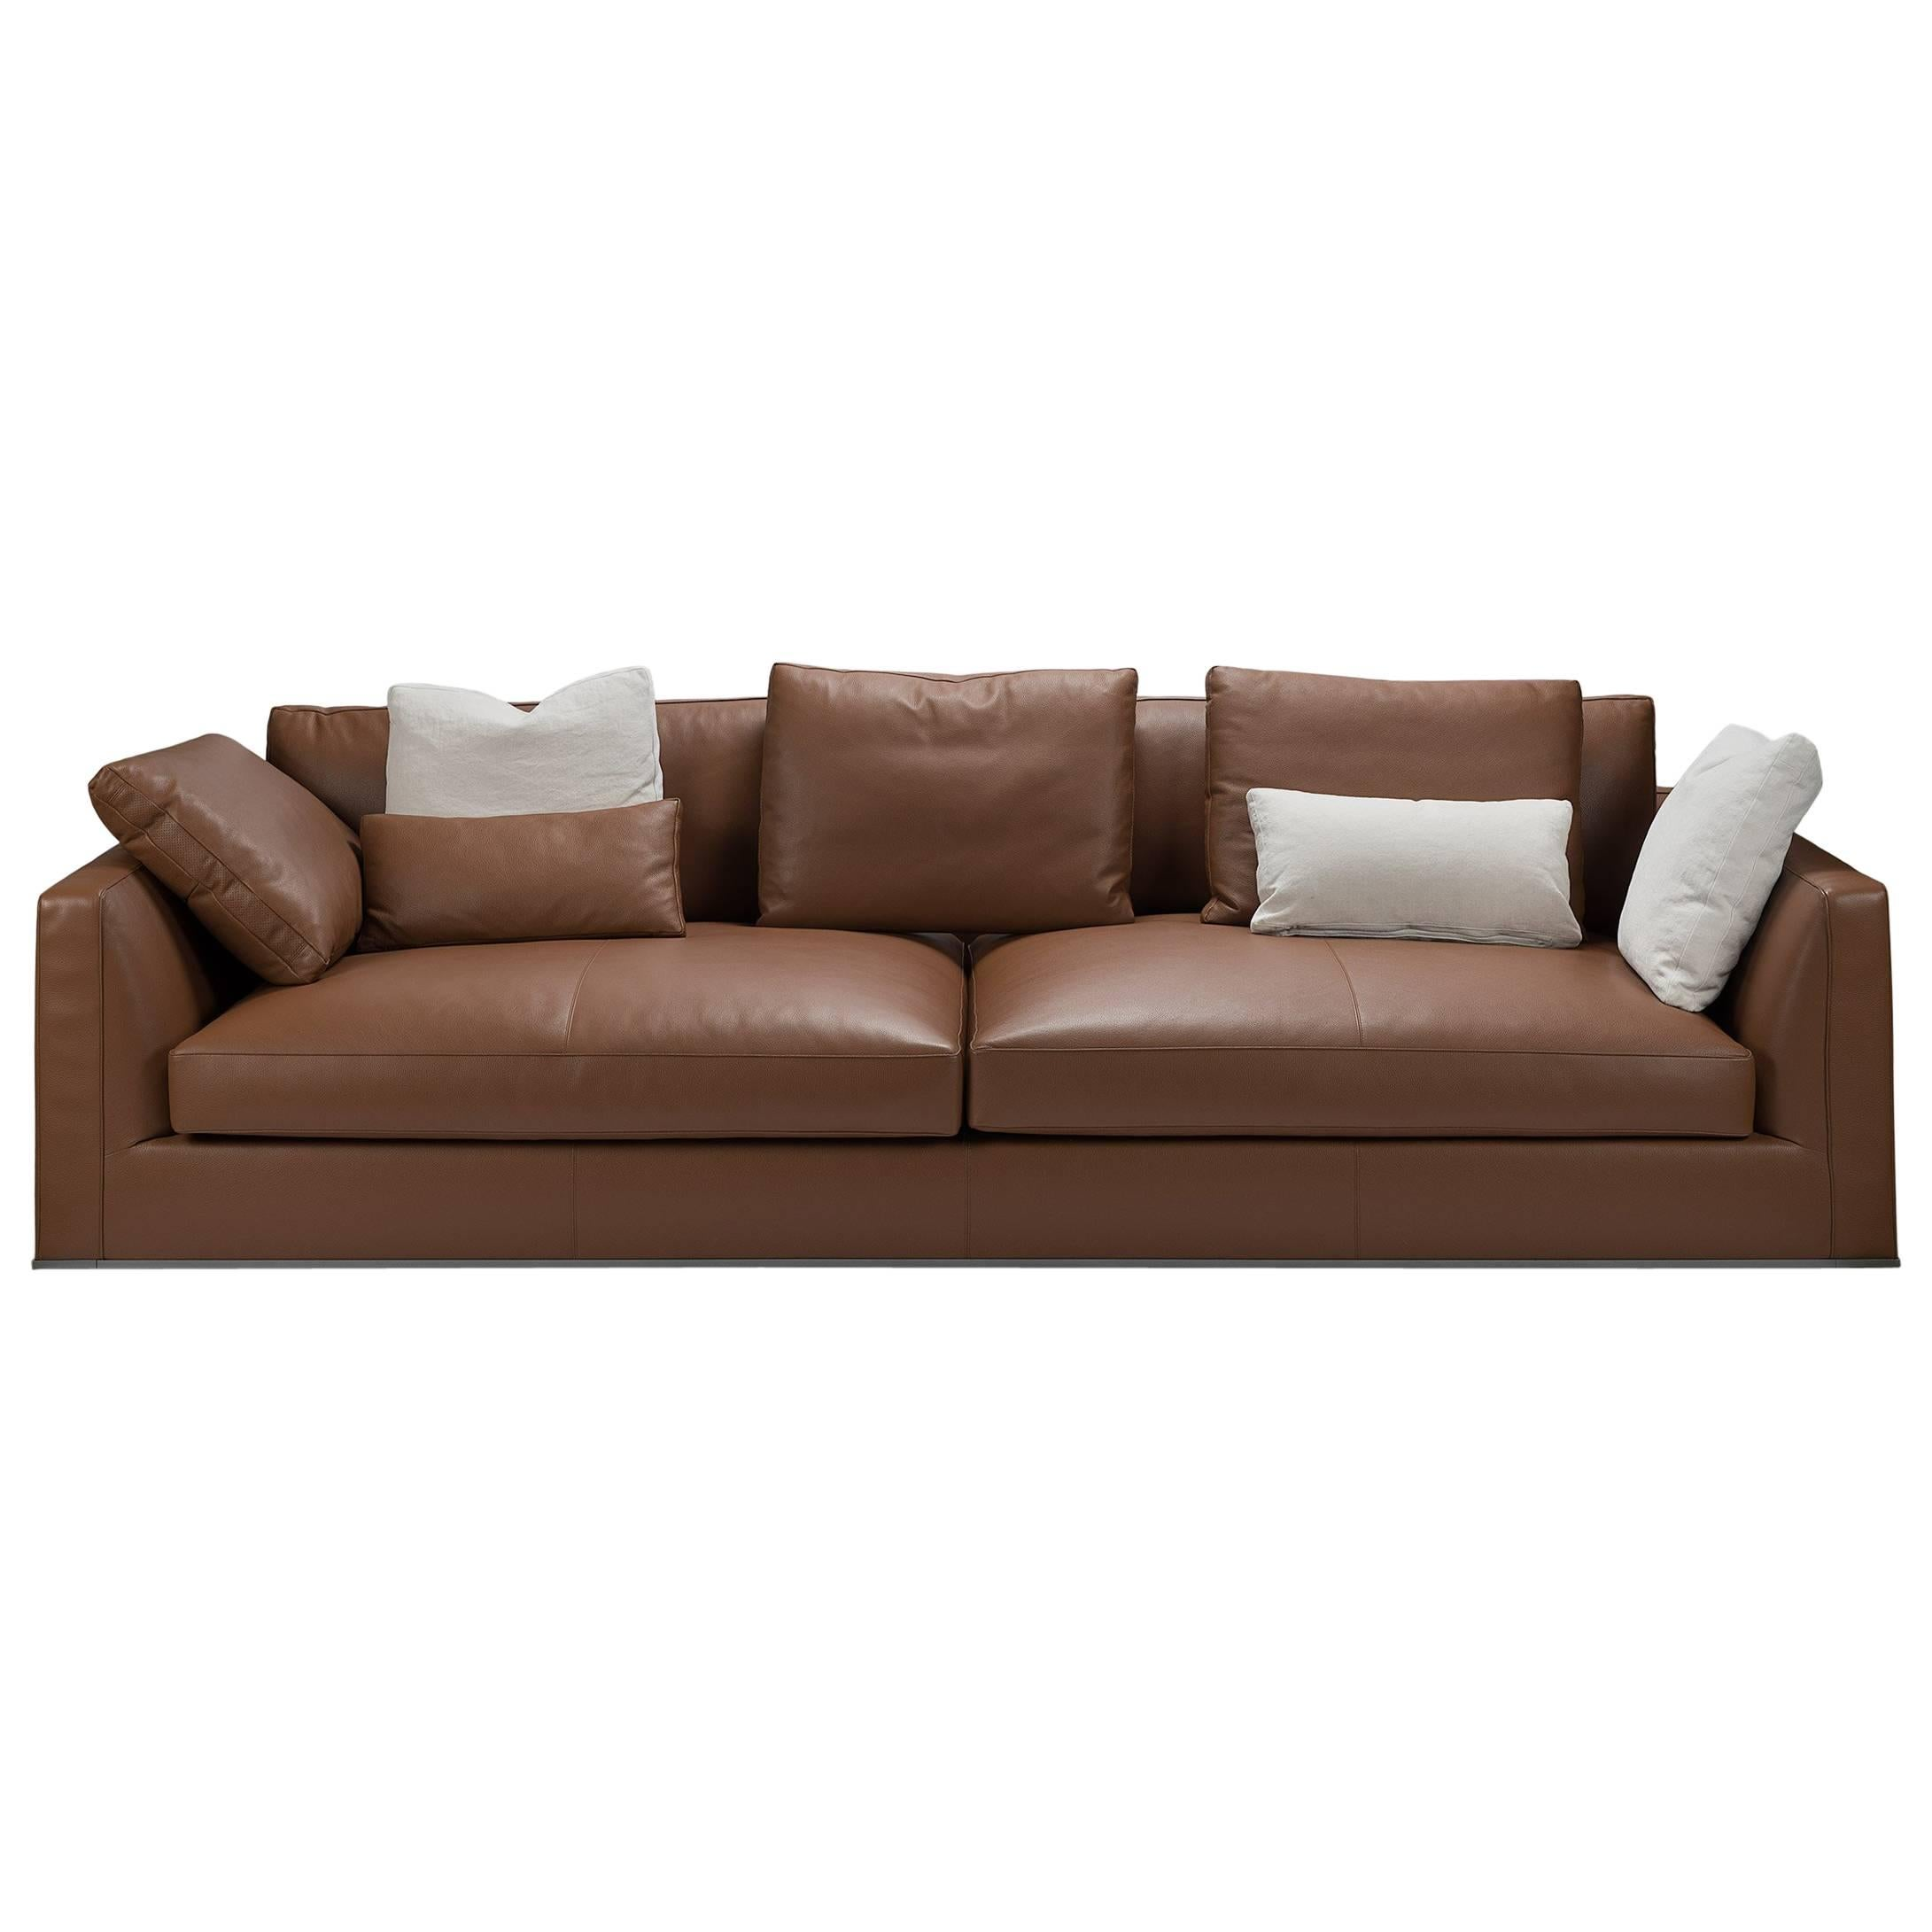 Captivating Brown Leather Sofa With Cushions By Bu0026B Italia For Sale